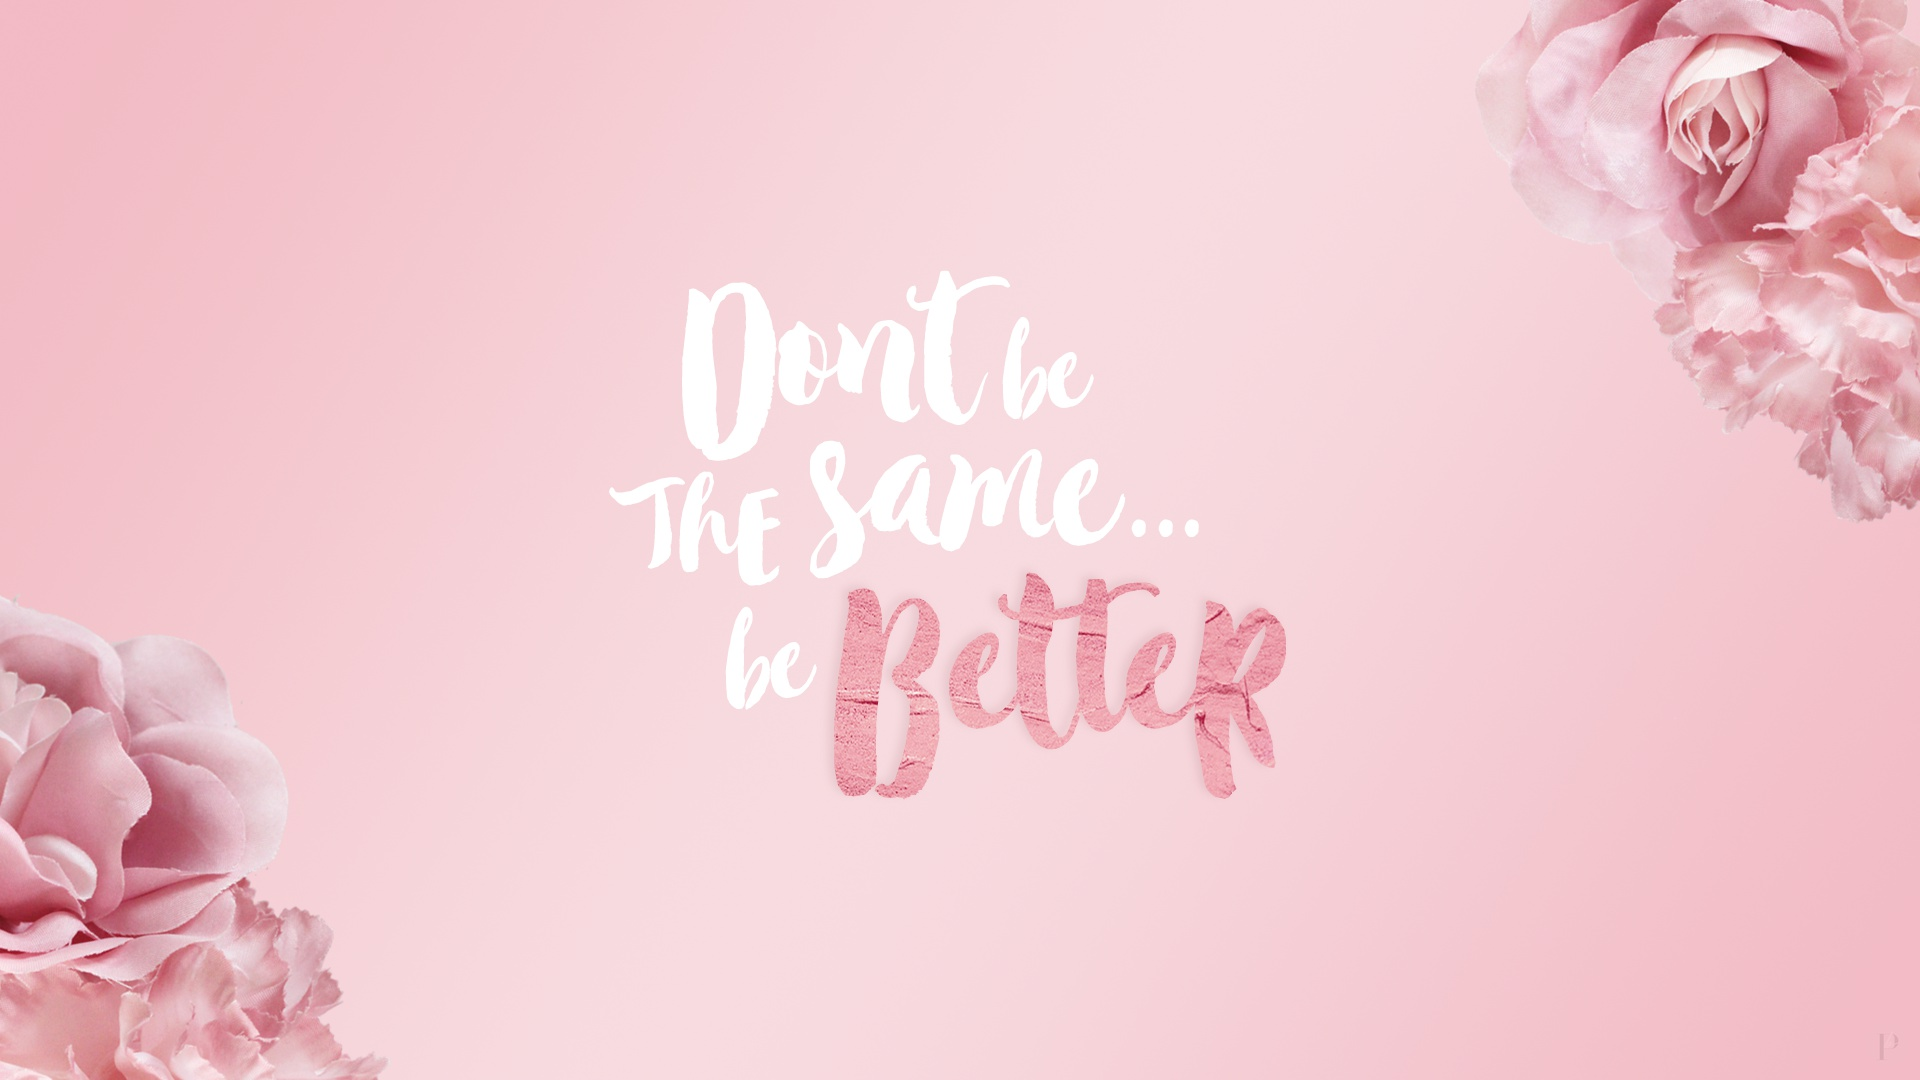 Be Better Quotes Wallpapers Wallpapers Hd